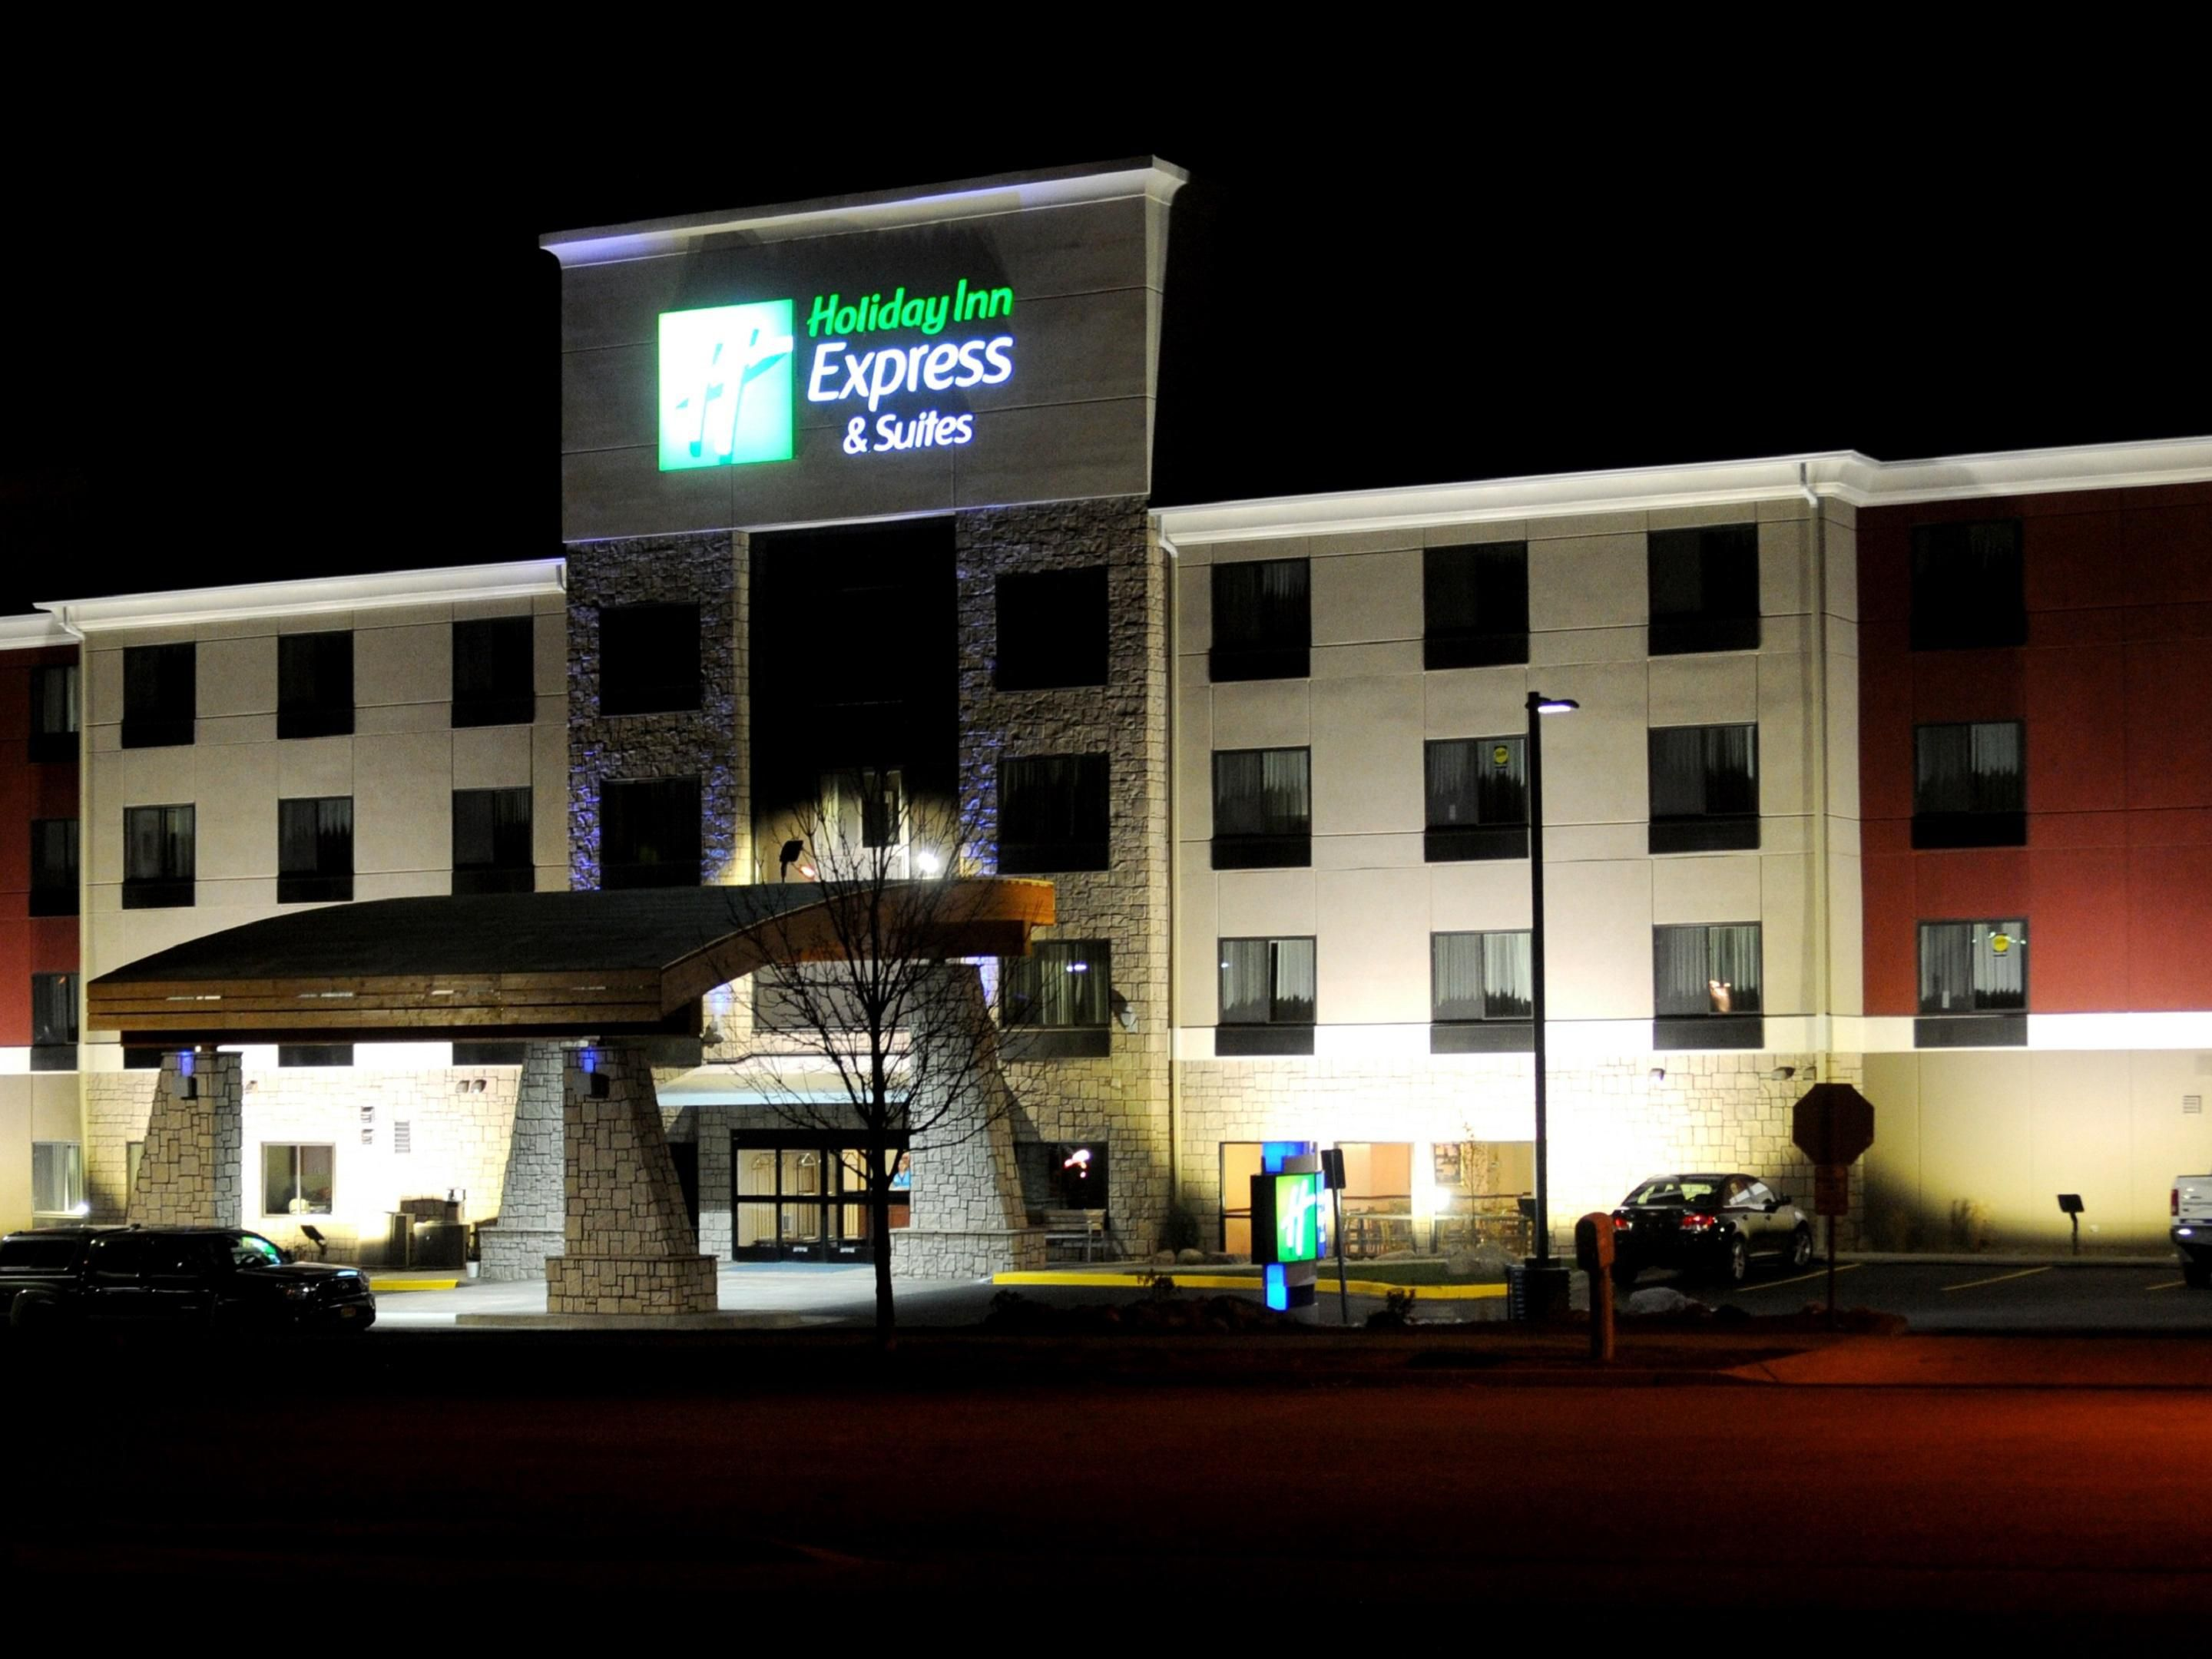 Holiday Inn Express & Suites in Bismarck